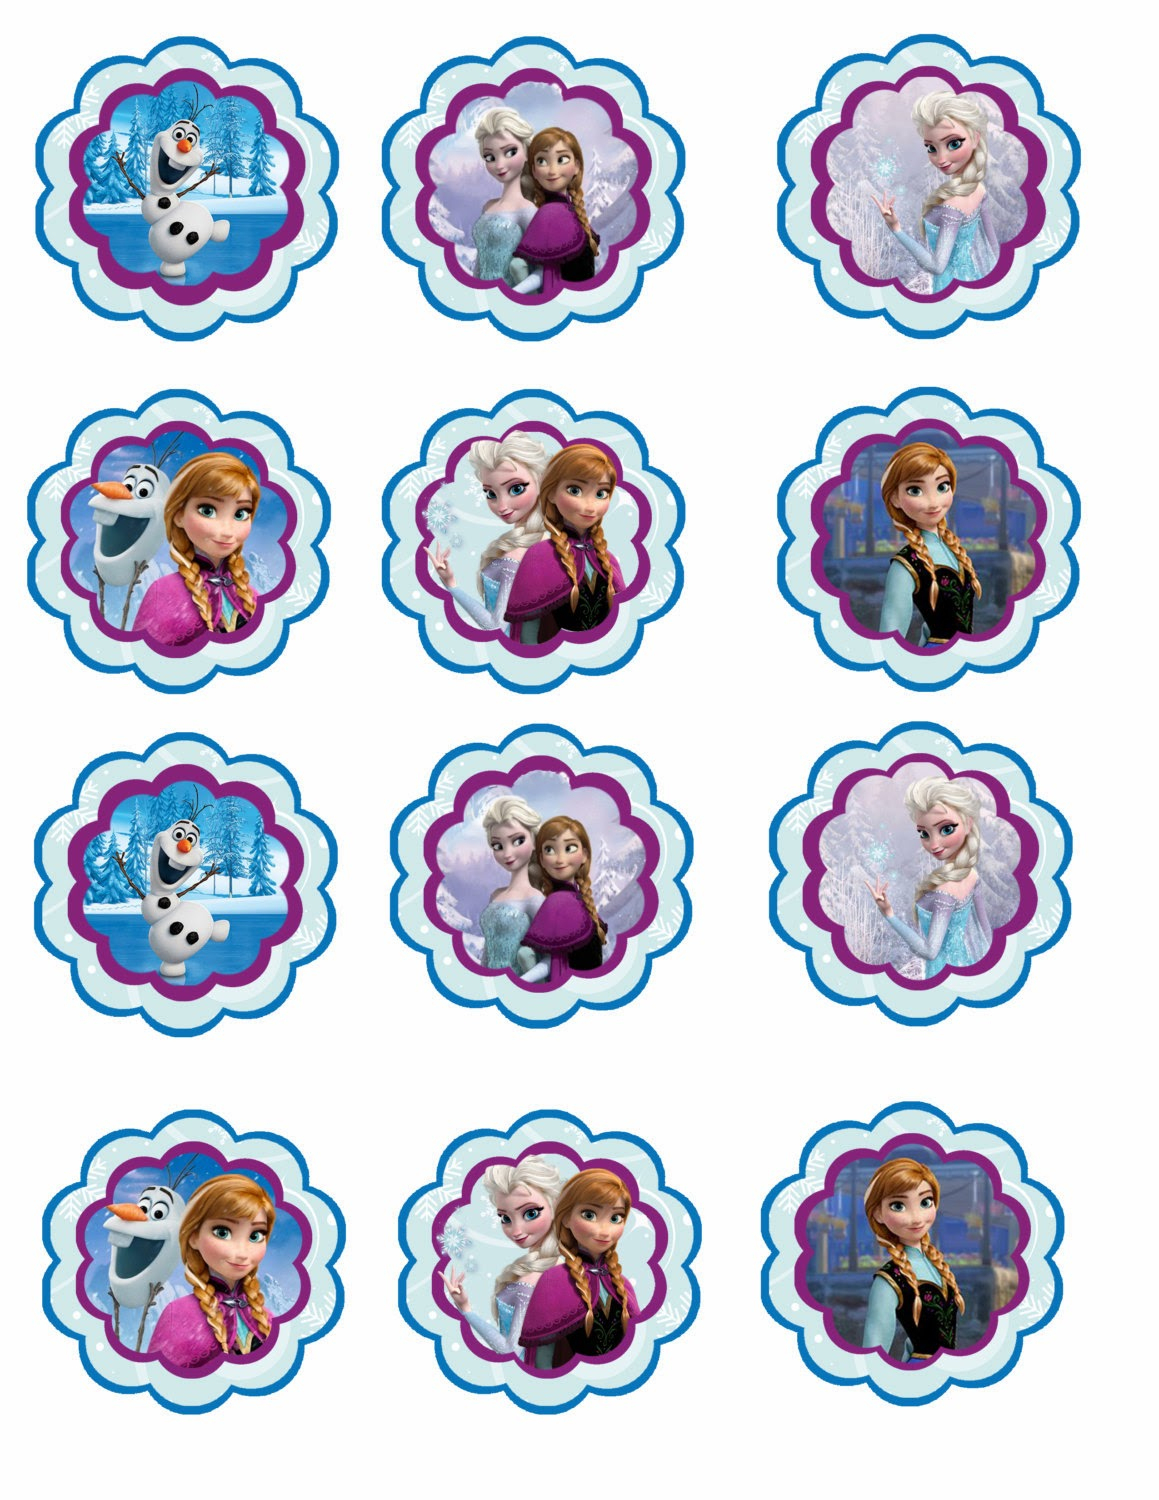 Frozen: Free Printable Toppers. | Oh My Fiesta! In English - Free Printable Mermaid Cupcake Toppers